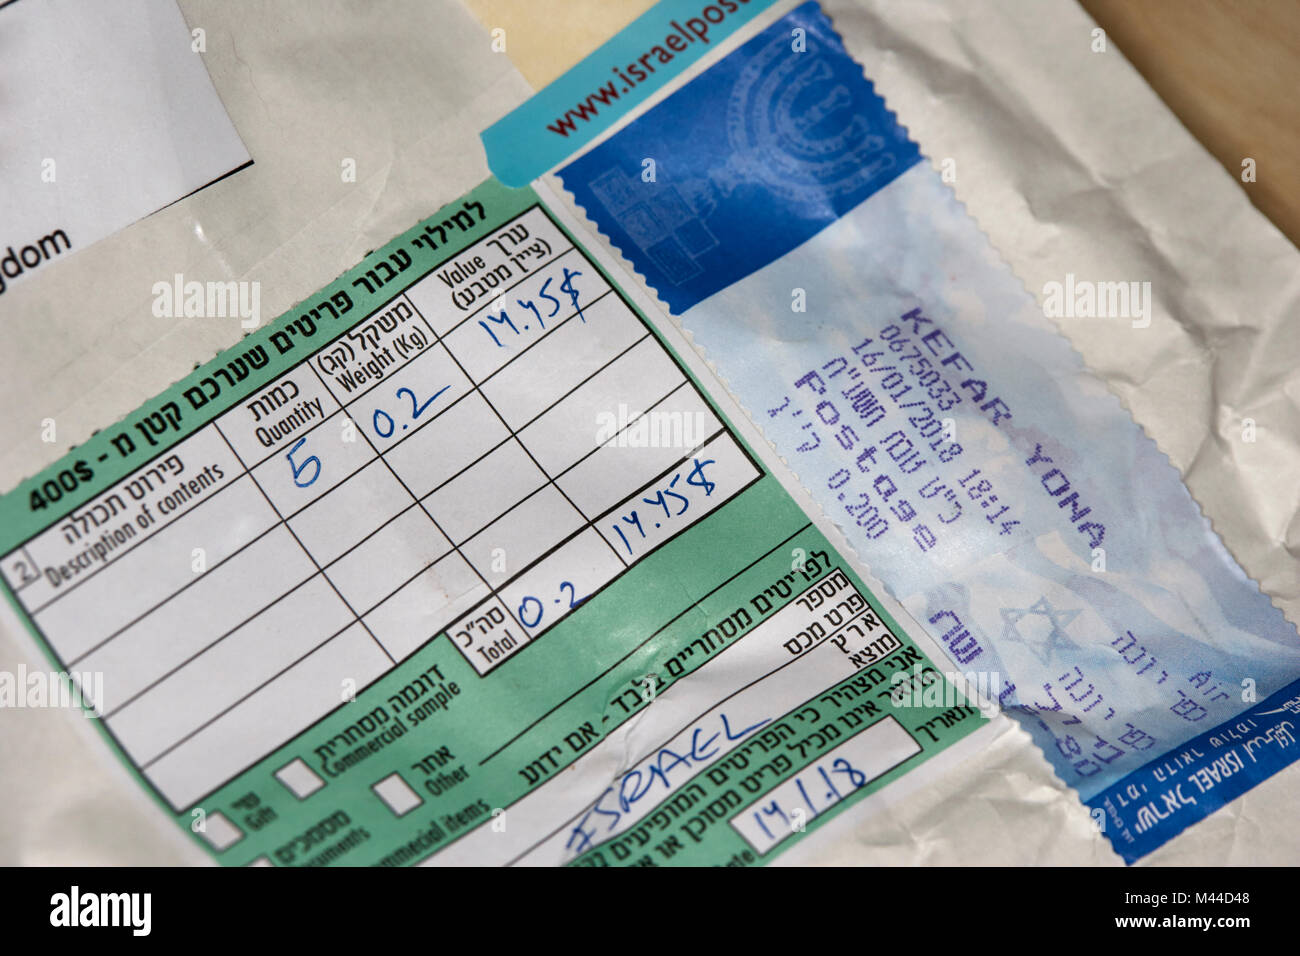 Israel post customs declaration and printed postage label from kefar yona israel - Stock Image